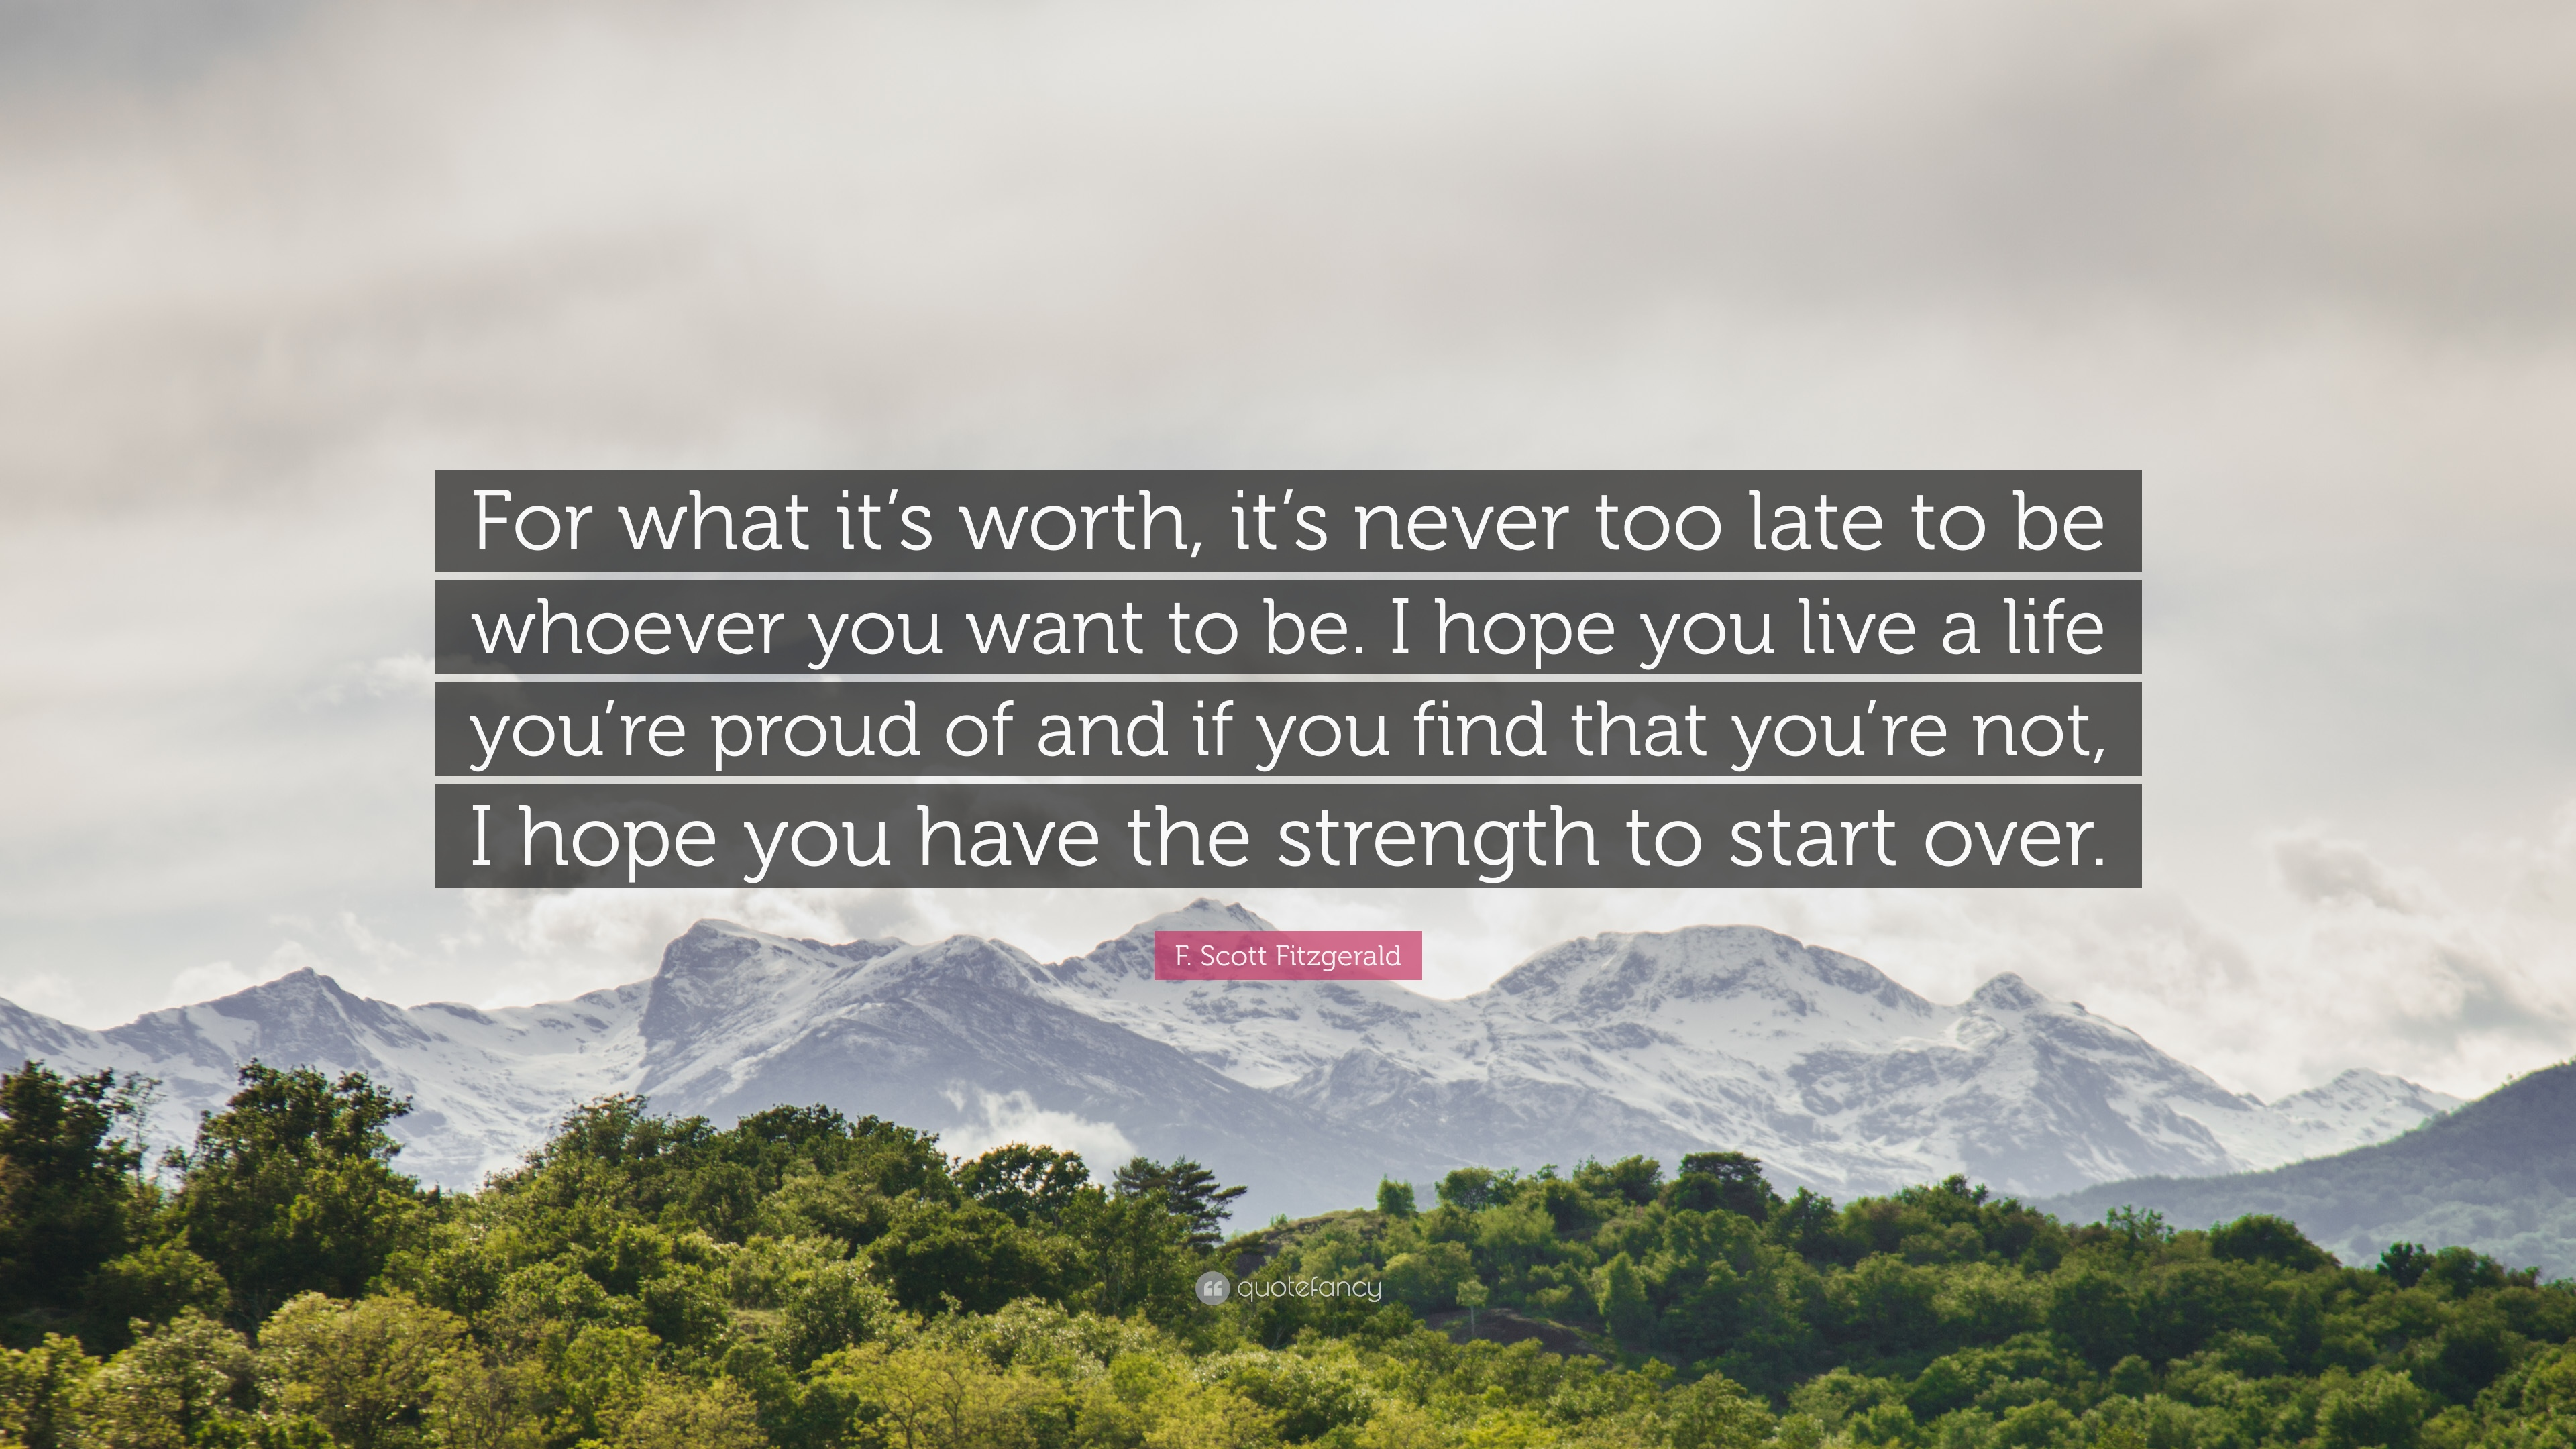 F Scott Fitzgerald Quote For What Its Worth Its Never Too Late